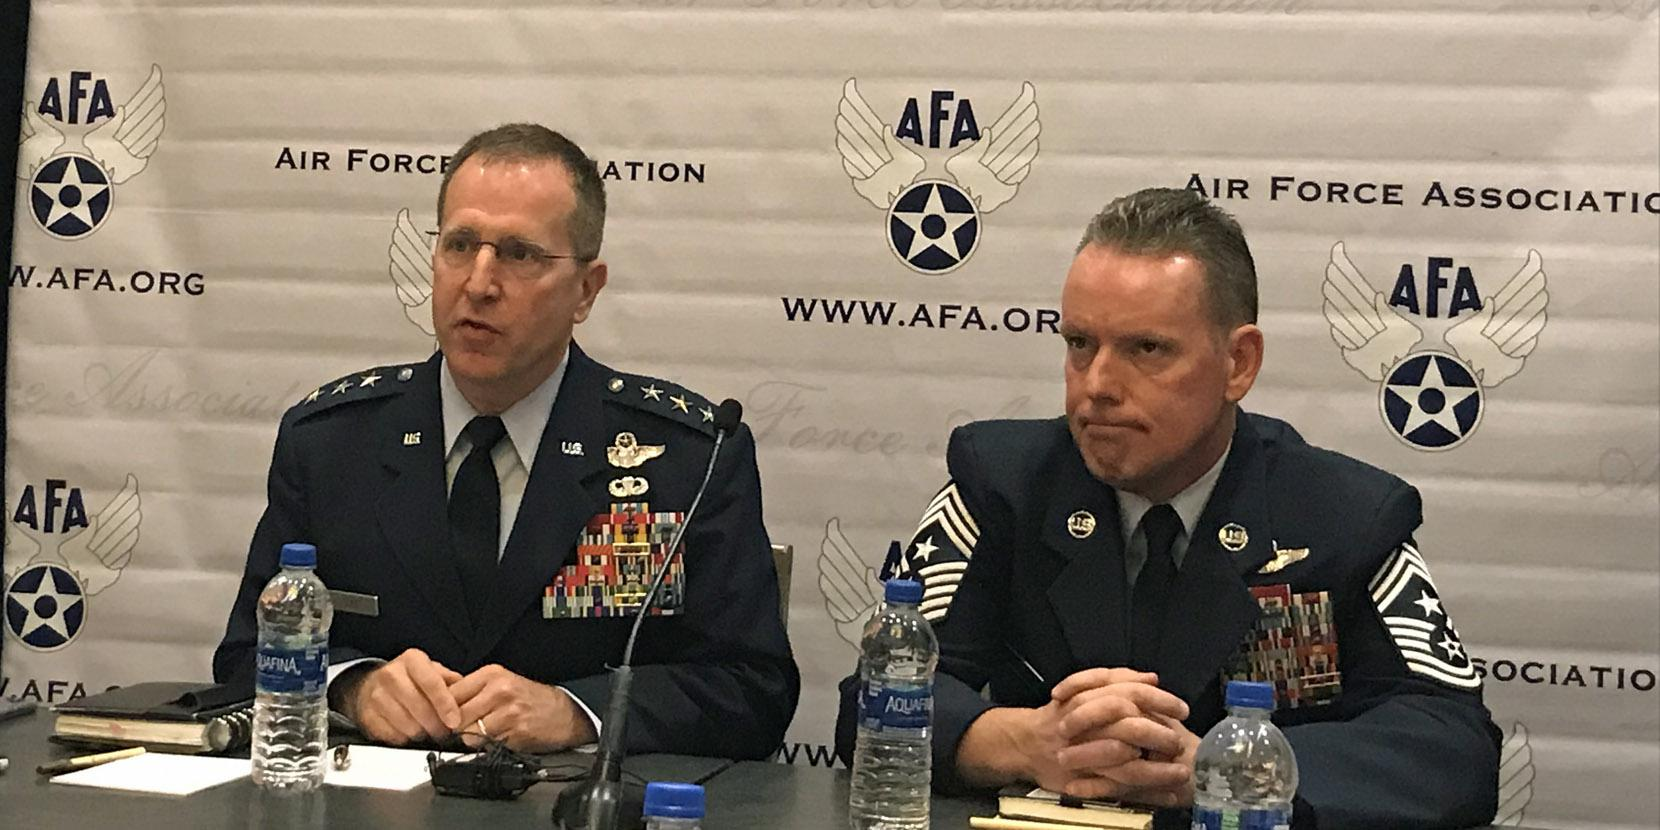 The Air Force Special Operations Command's (AFSOC's) development of a 60-kW laser weapon system is on track, says AFSOC's new commander, Lt. Gen. James Slife (l), at the Air Force Association's Air, Space and Cyber Conference yesterday.